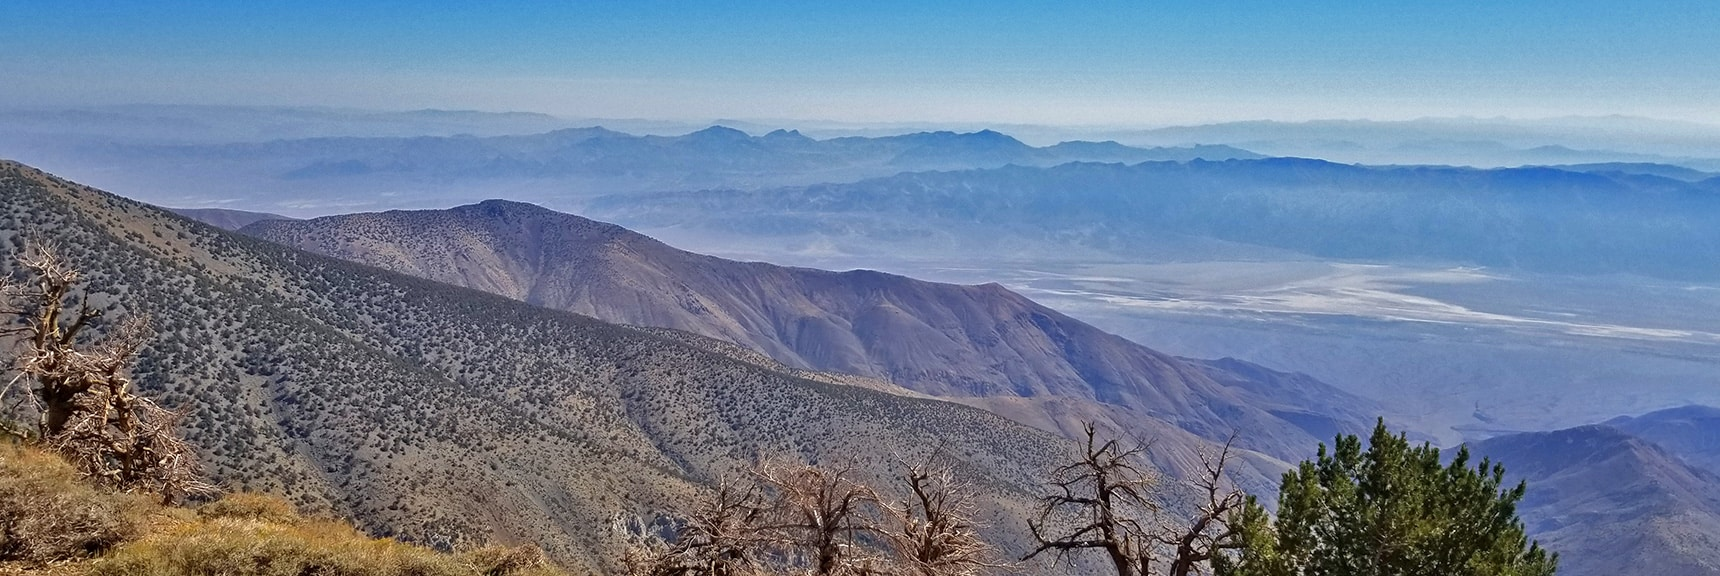 A Look Down to Bad Water, Devil's Golf Course and Funeral Mountains in Death Valley   Telescope Peak Summit from Wildrose Charcoal Kilns Parking Area, Panamint Mountains, Death Valley National Park, California